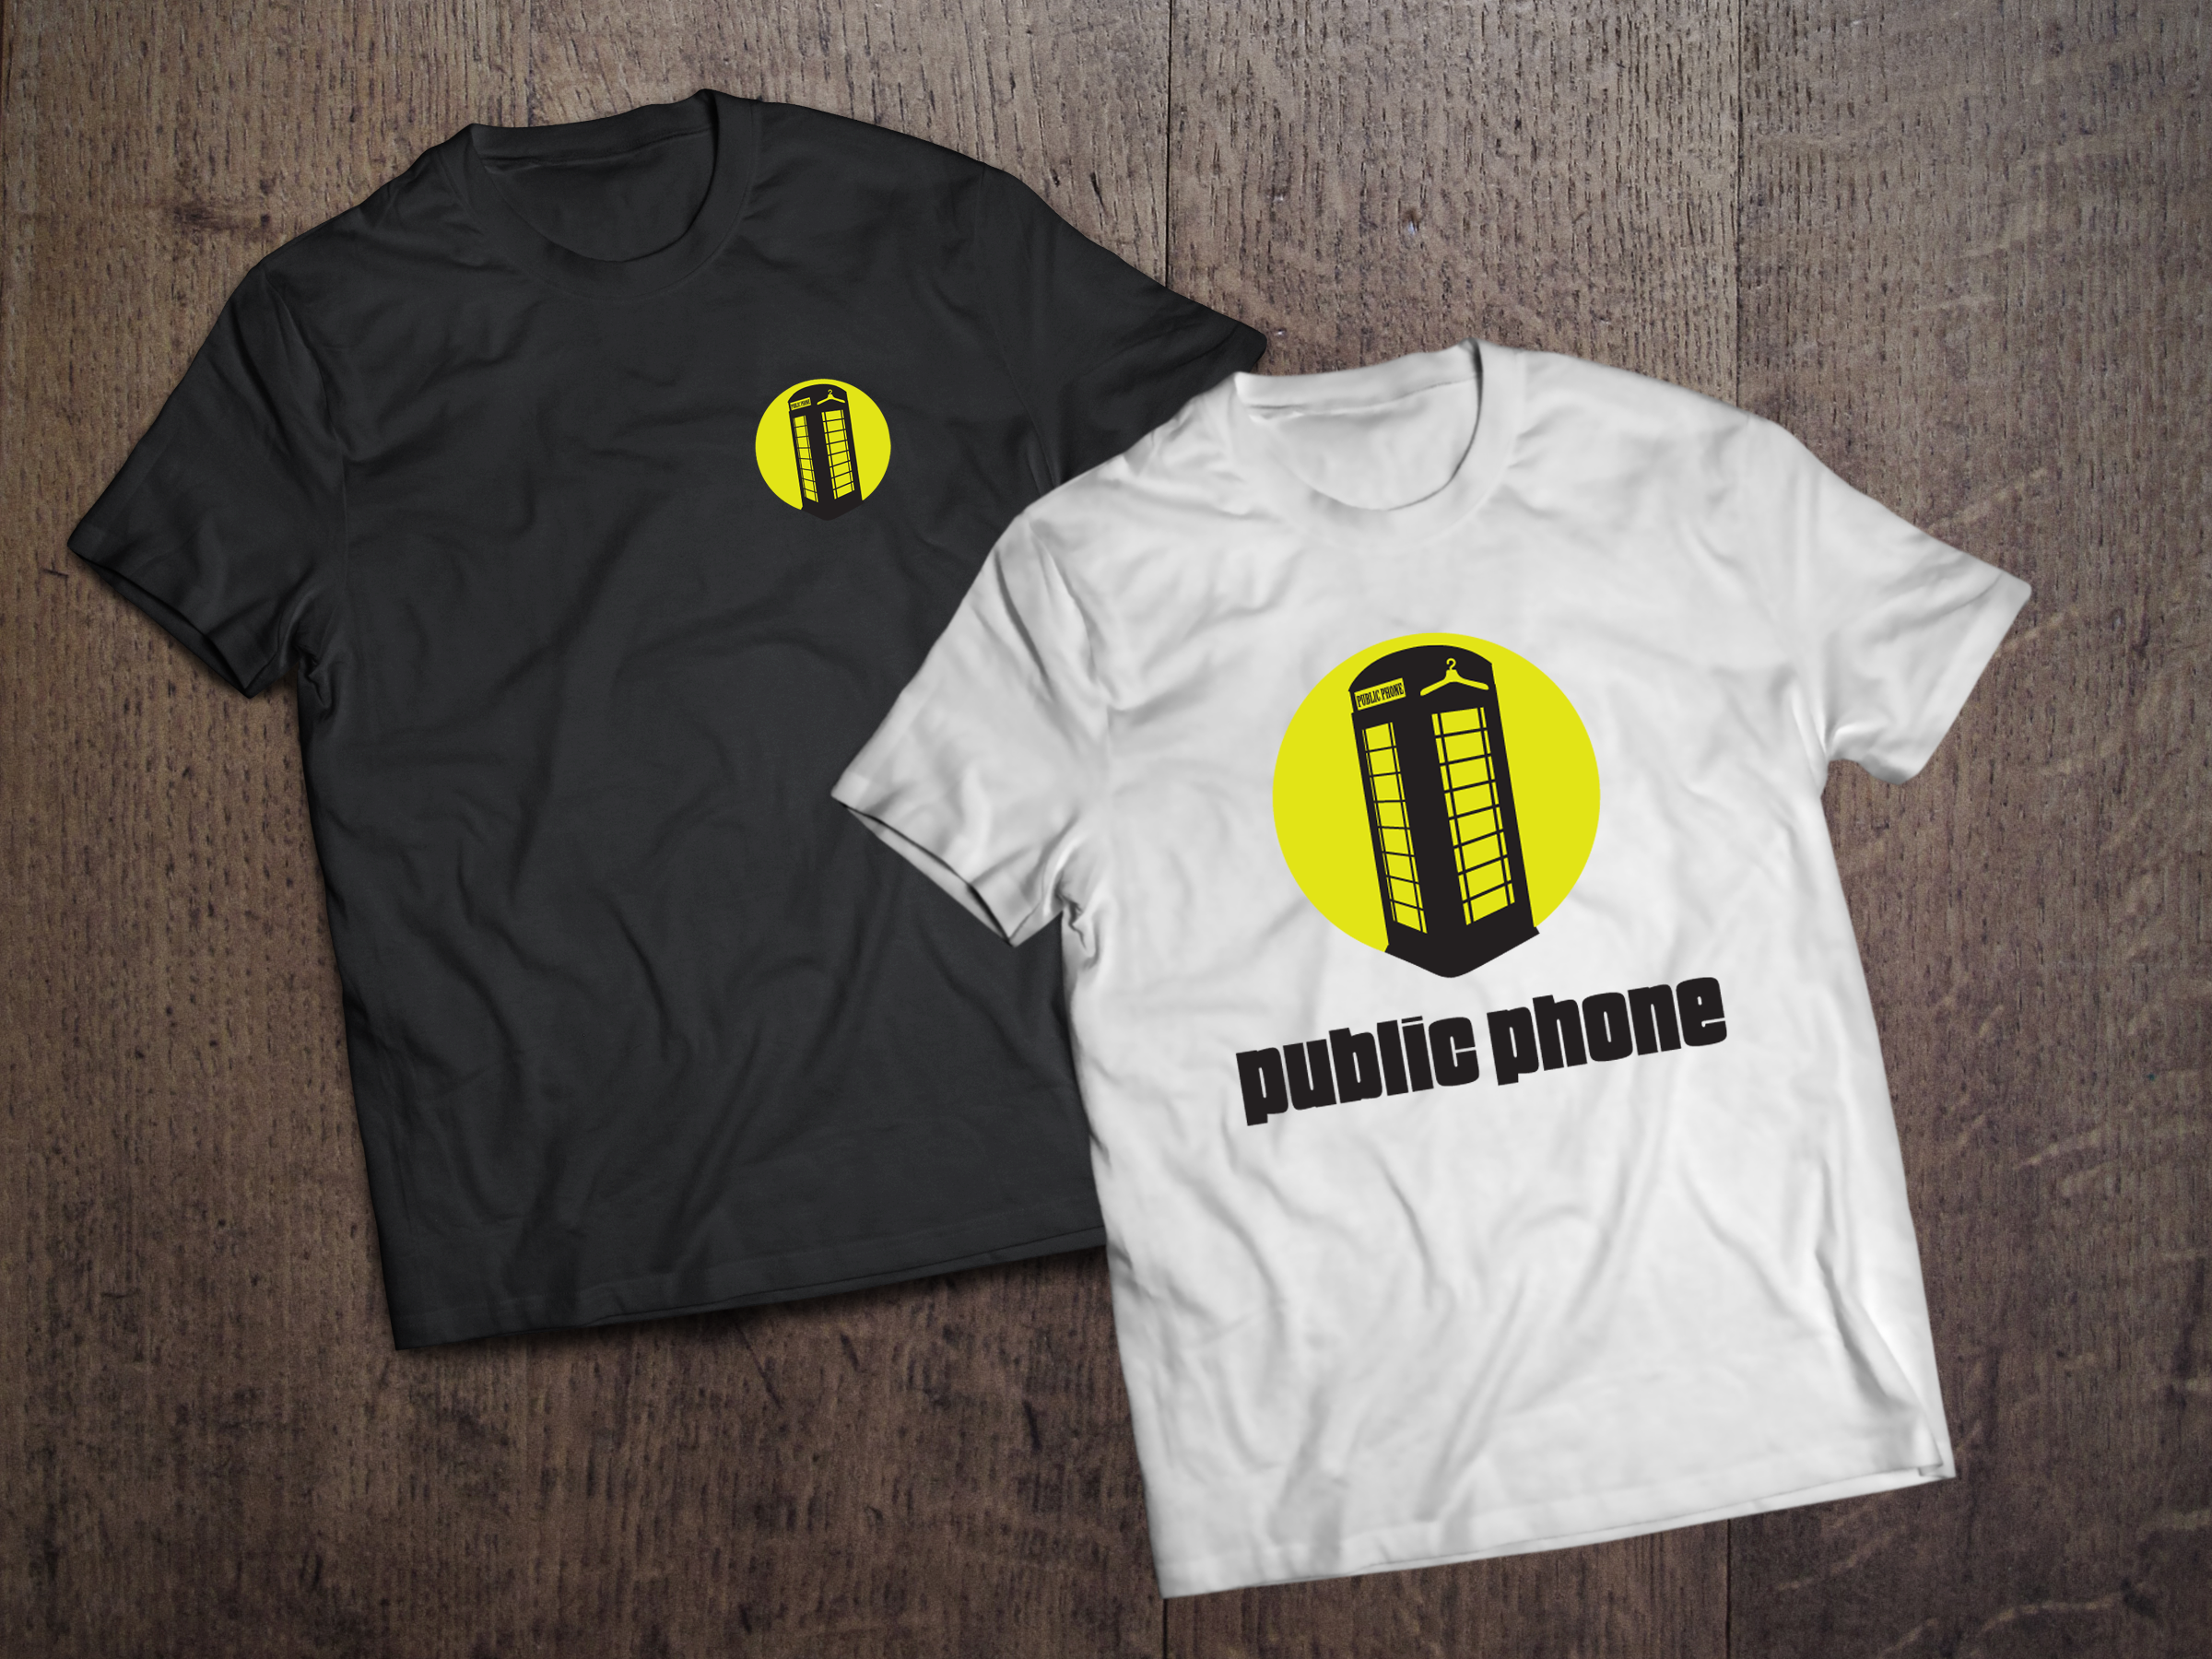 Public Phone fashion tshirts